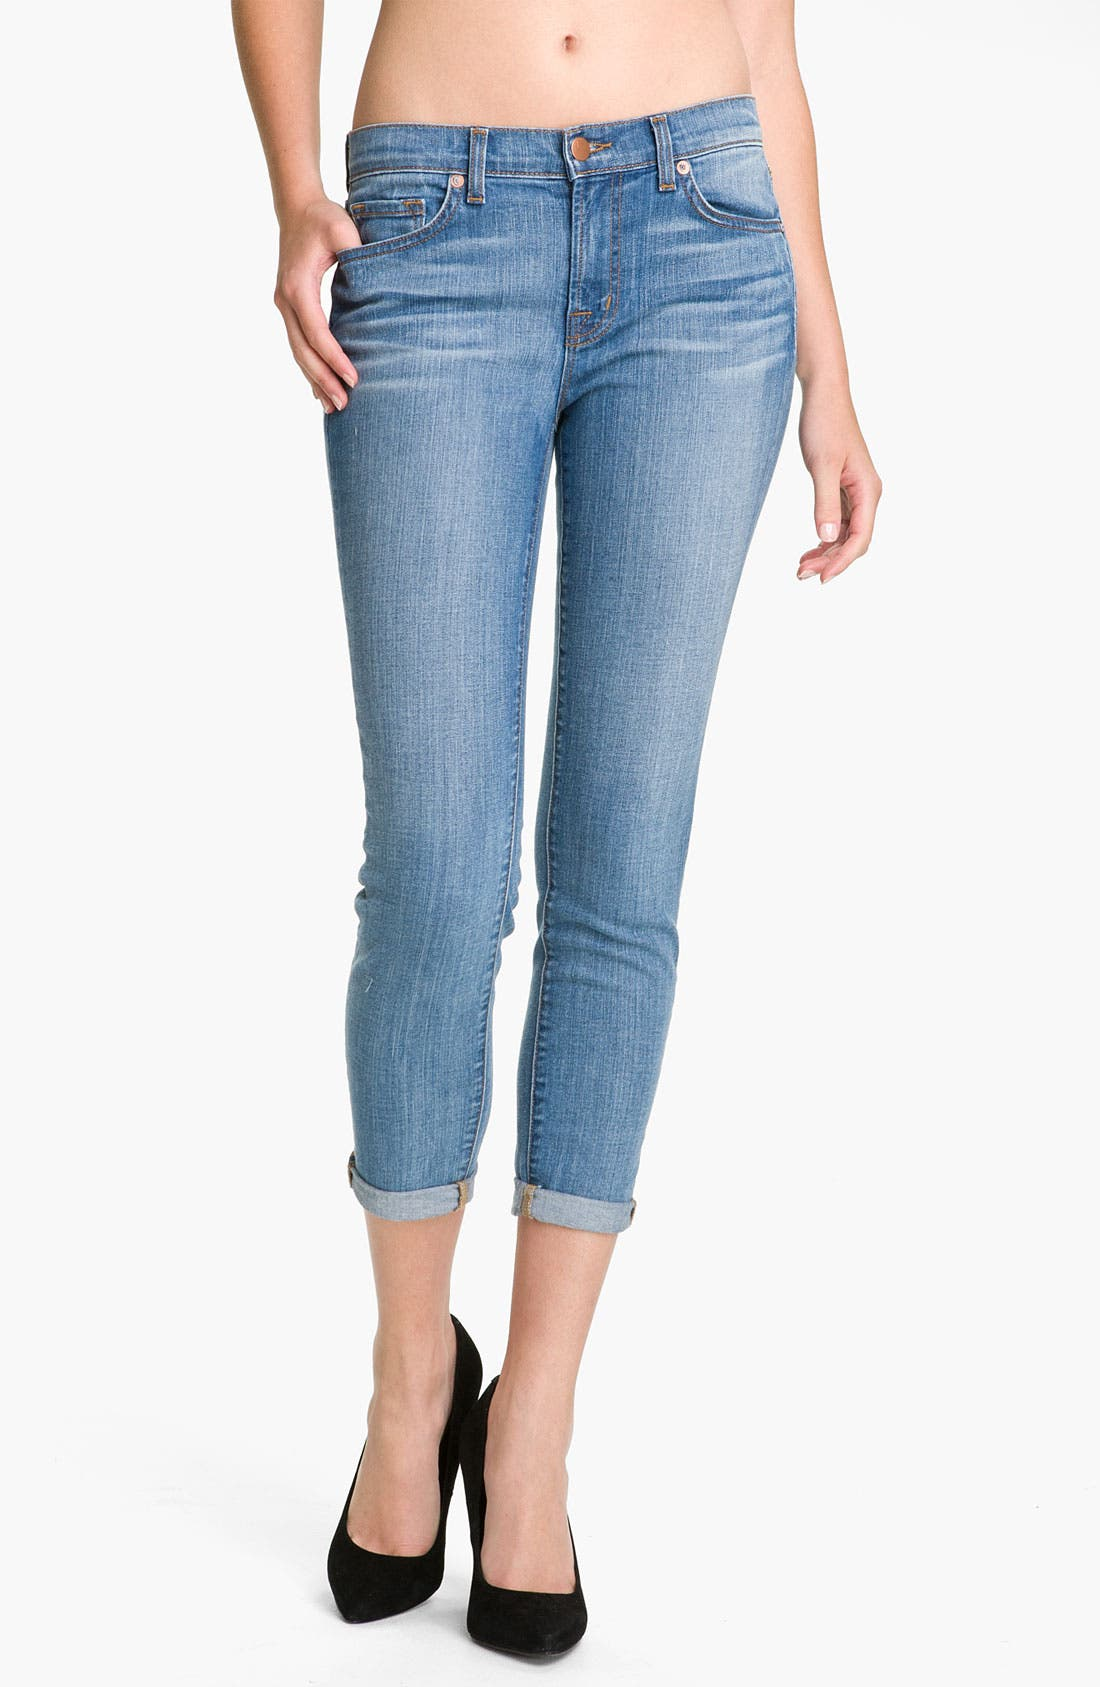 Alternate Image 1 Selected - J Brand Crop Stretch Jeans (Caicos)